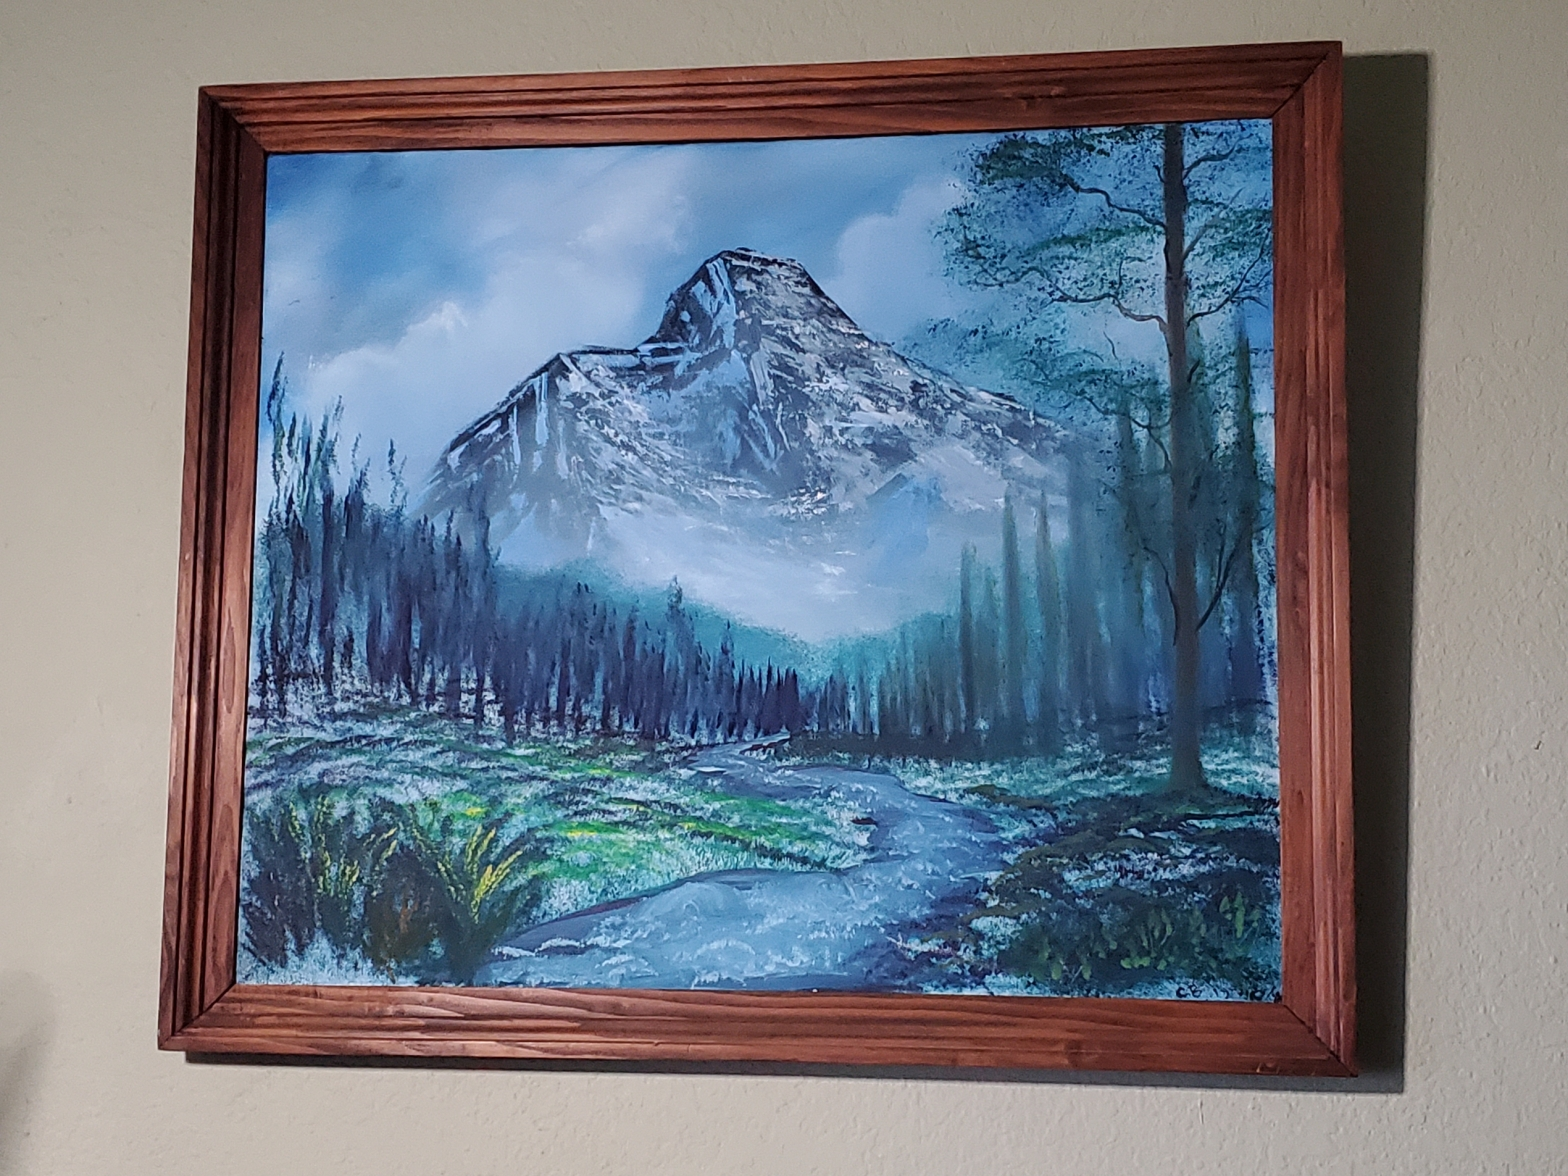 An amateur painting of a mountain and a river.